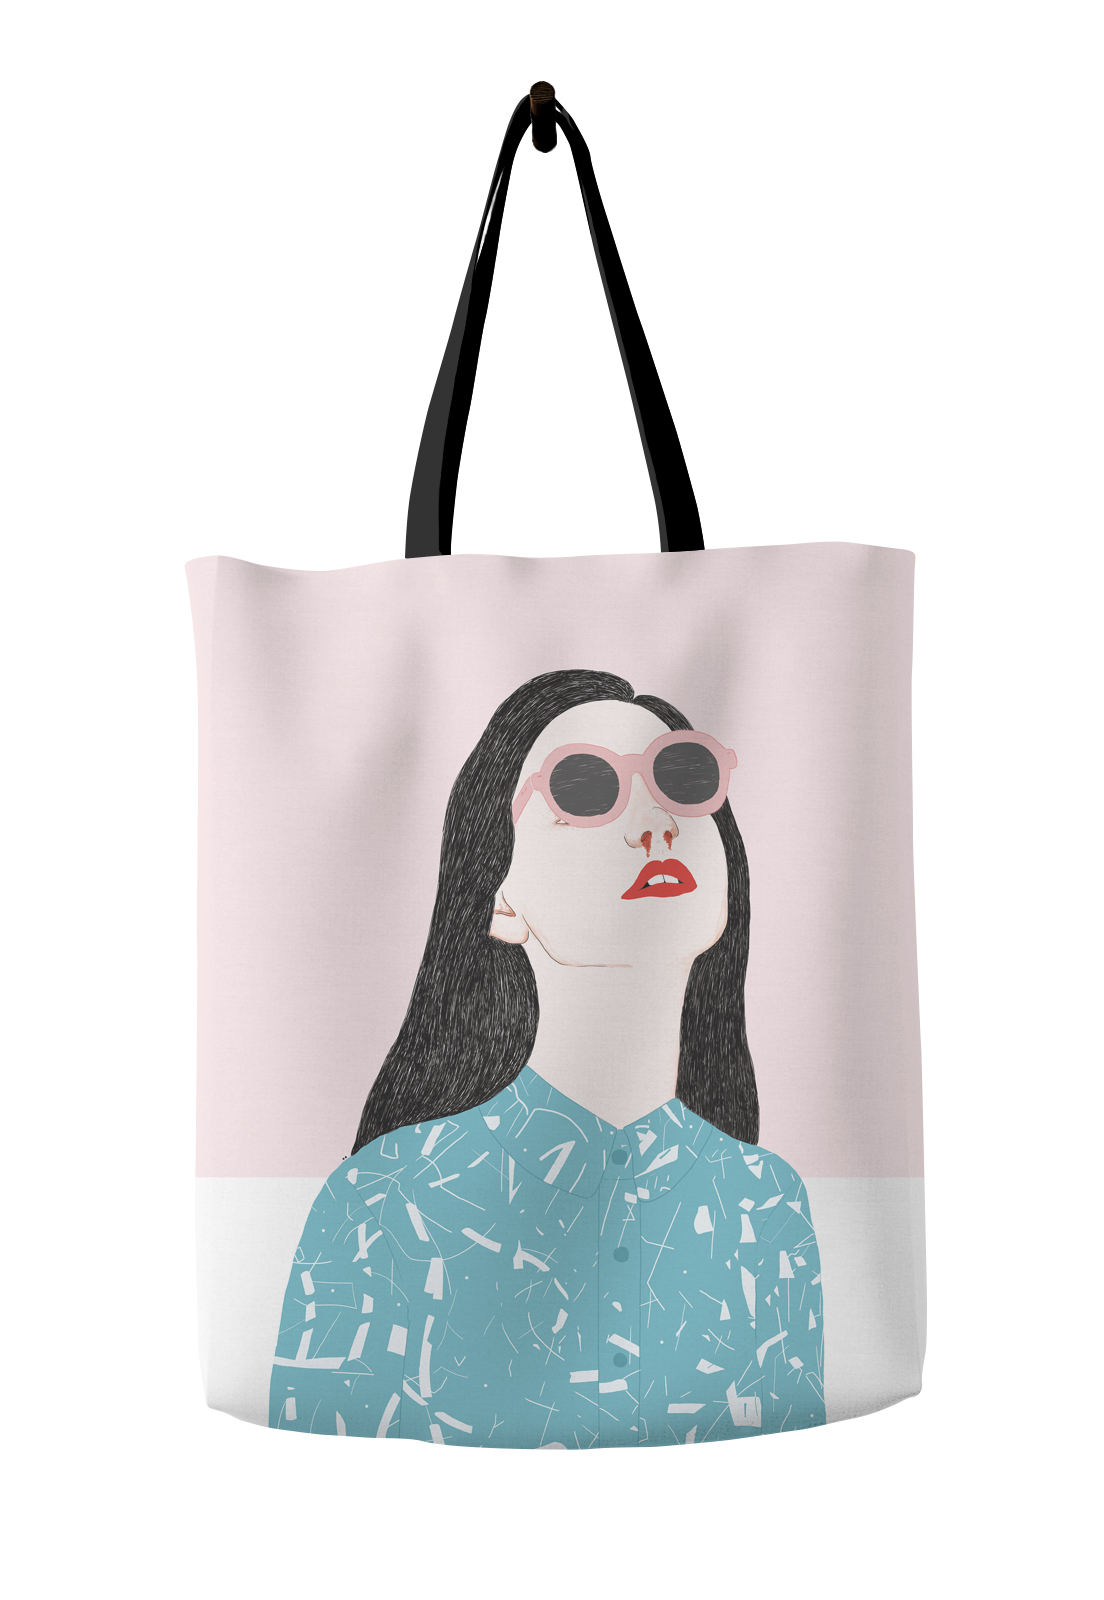 Tote bag blood girl dieresis